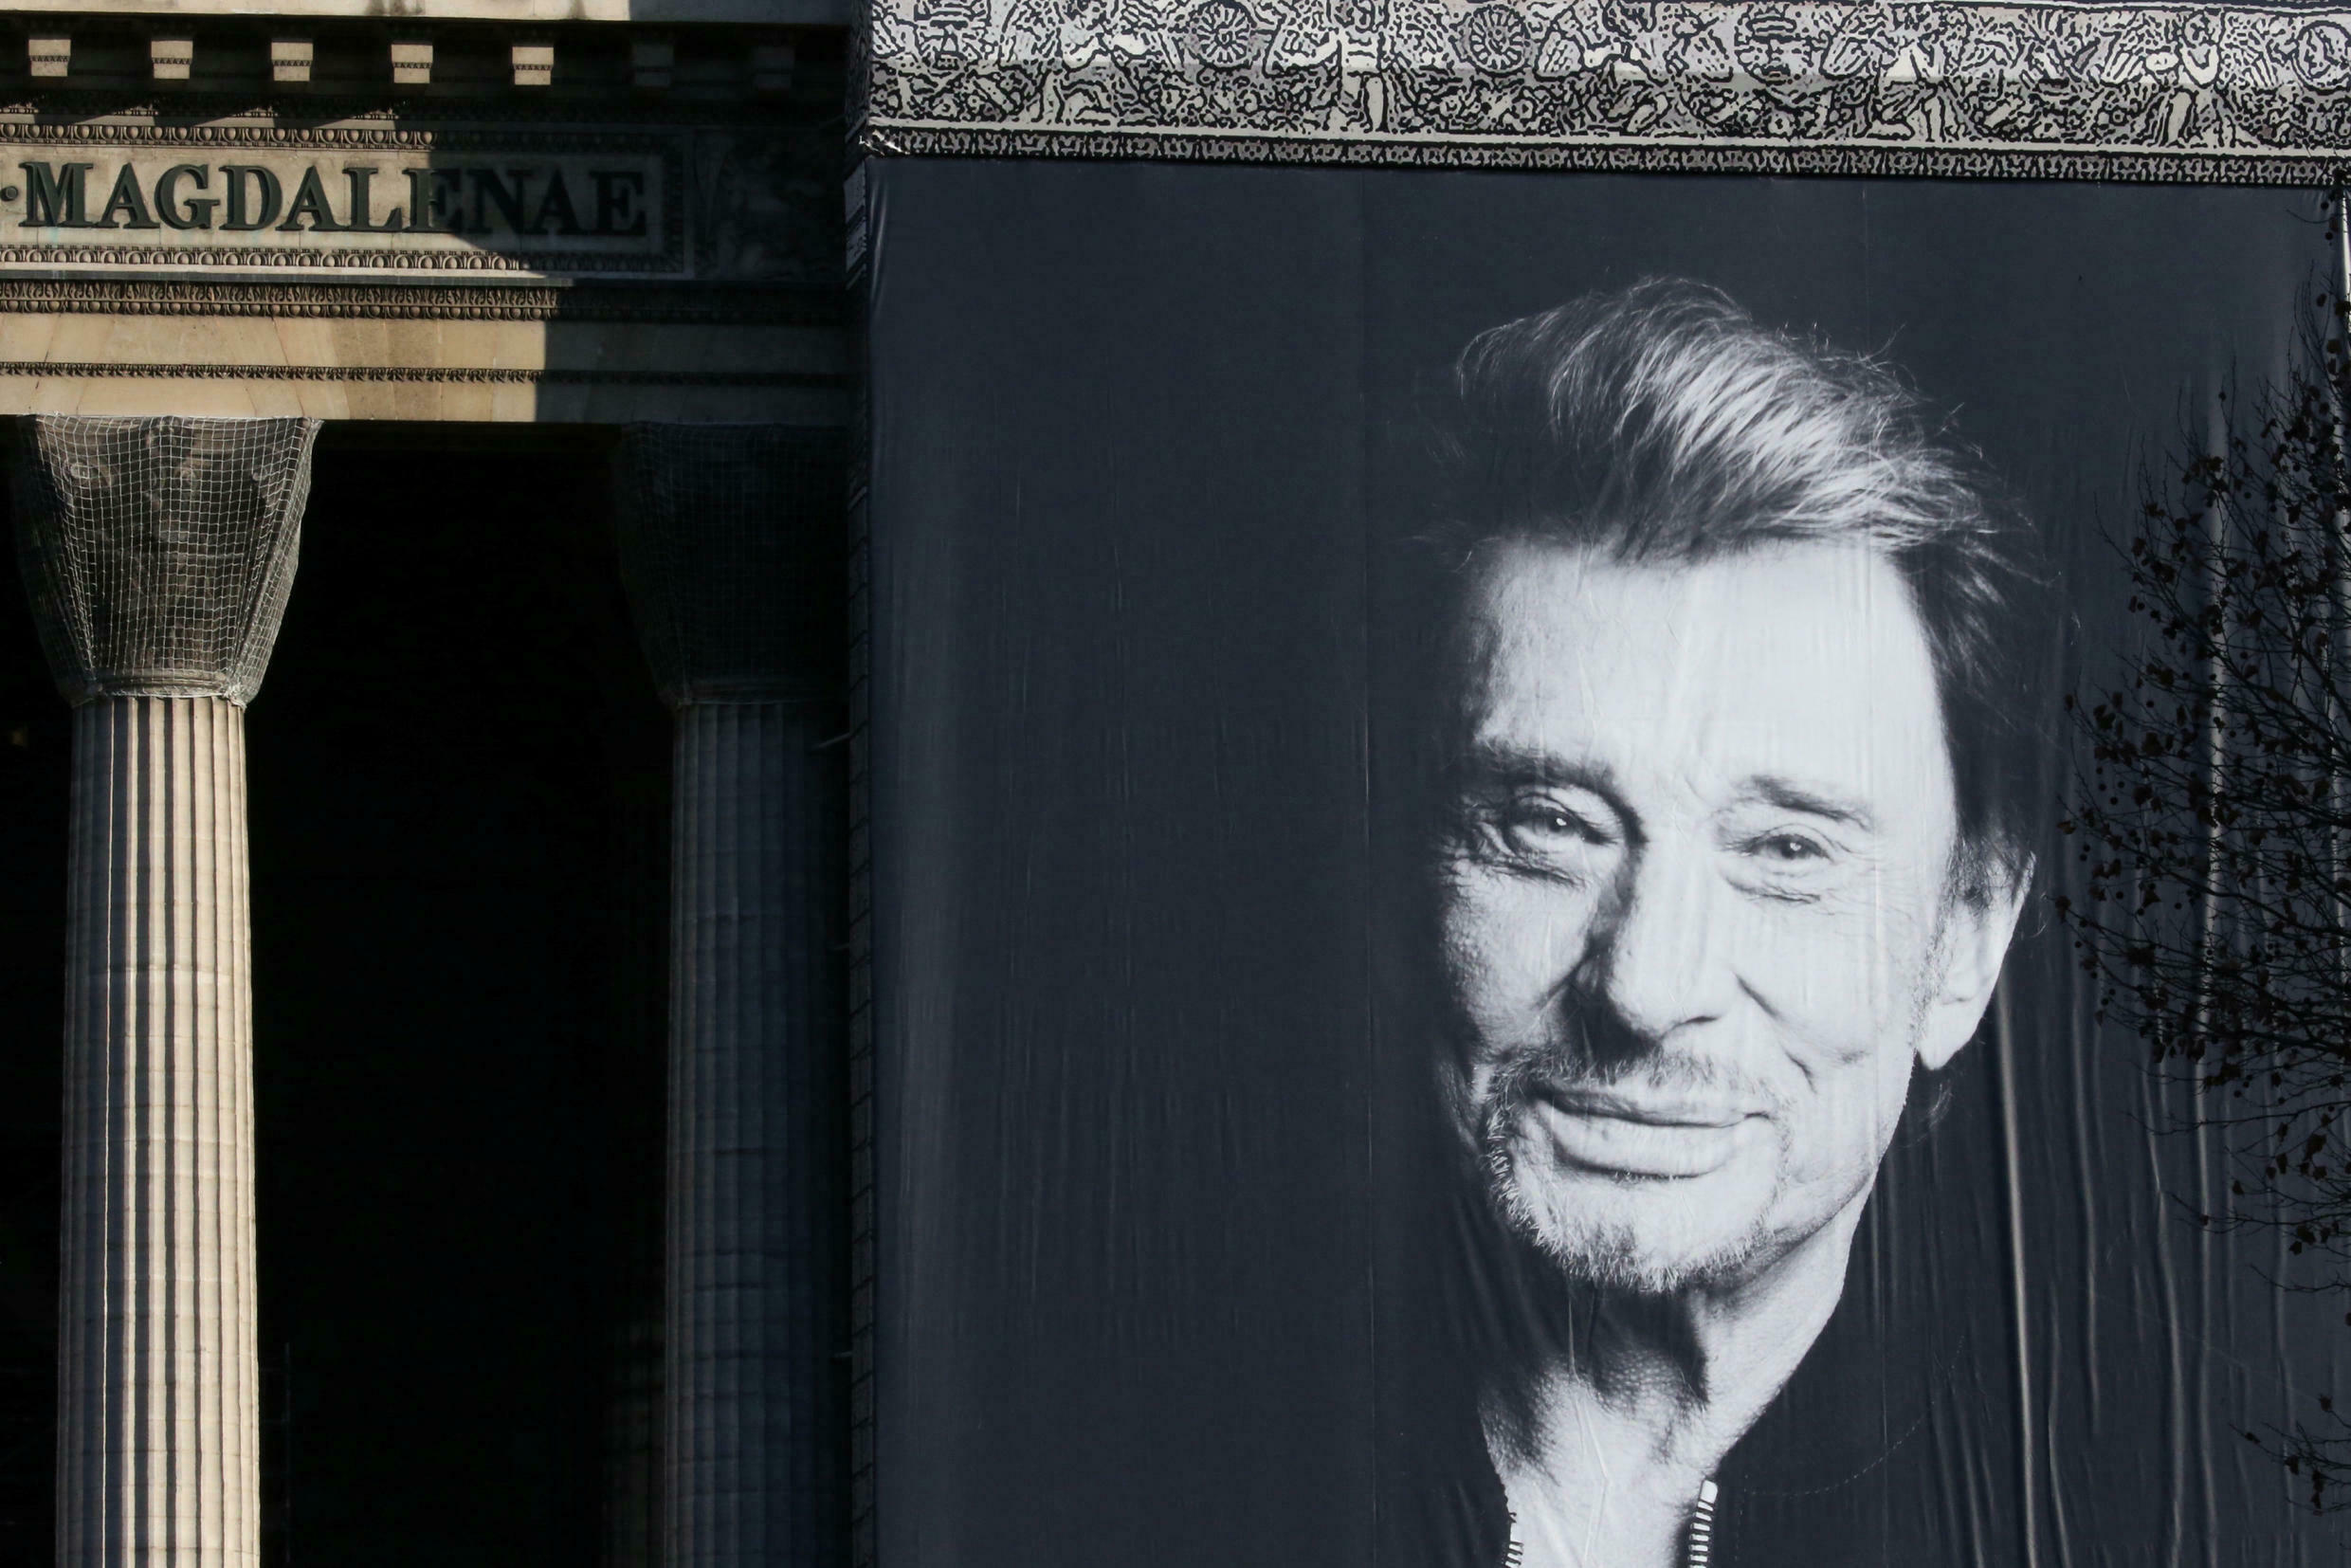 A giant poster of late French singer and actor Johnny Hallyday is displayed on the facade of the Madeleine Church during a ceremony in Paris, December 9, 2017.